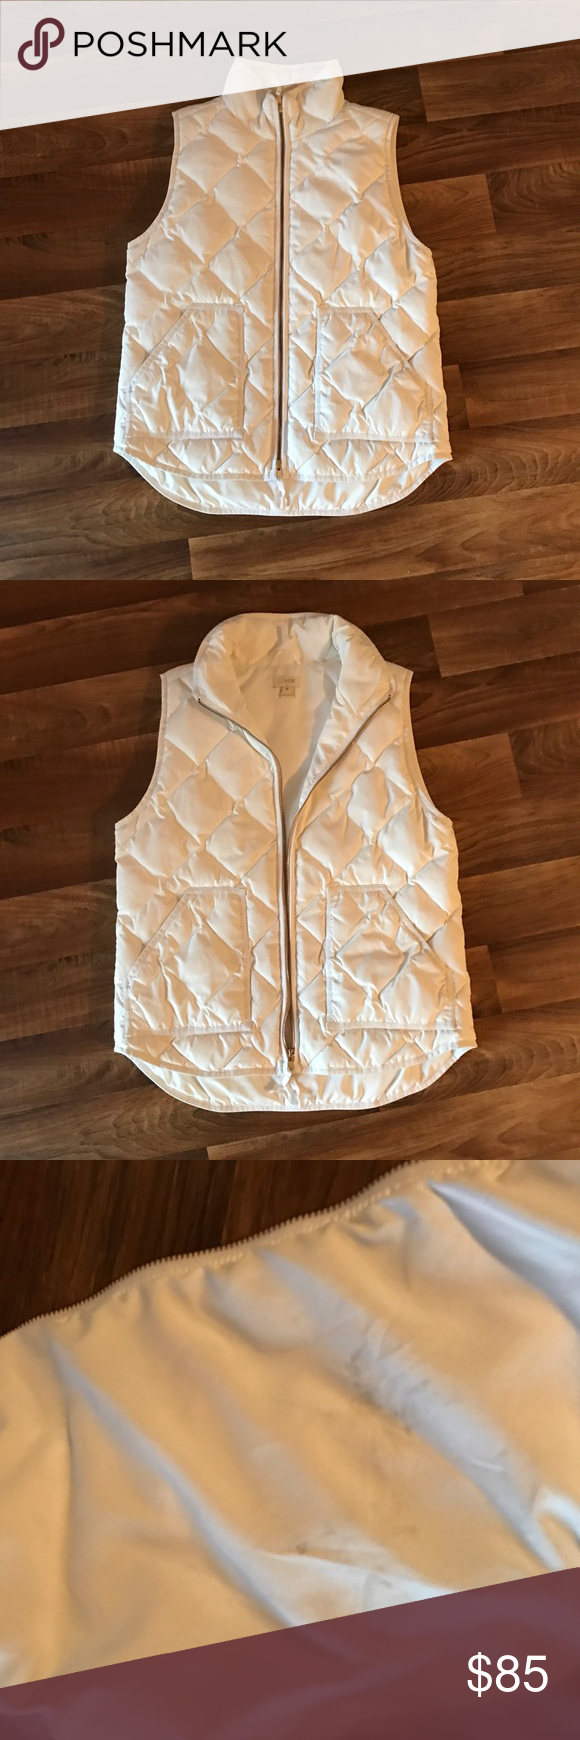 EUC - J.CREW: White Puffer Vest EXCELLENT USED CONDITION   > J.CREW - Classic White Puffer Vest <   -In almost perfect condition  -Two small light black stains on the inside (as noted in pictures above) - can most likely be removed with spot treatment and wash  -Dry cleaning is recommended BUT not necessary -Pure white color with full, functioning zipper  -Size medium, but runs a tad roomy, could fit a medium/large RETAIL:$115.00   -PLEASE READ ABOVE RULES-  Happy Poshing!! ✌🏻 J. Crew…